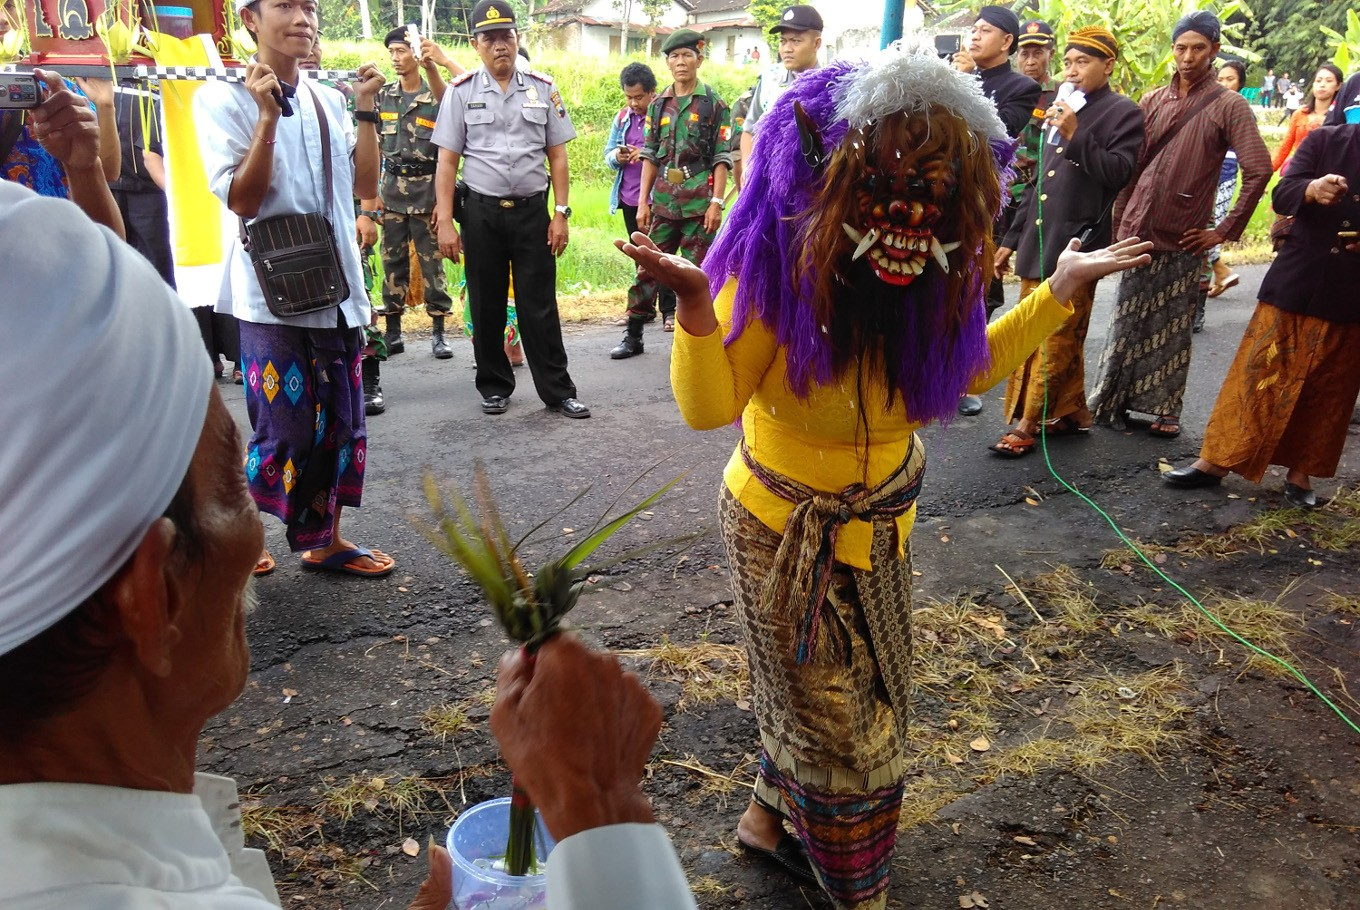 A Hindu woman wears a mask that symbolizes evil as she receives splashes of holy water from a priest during the Melasti ritual in Klaten, Central Java, on Sunday, March 11.